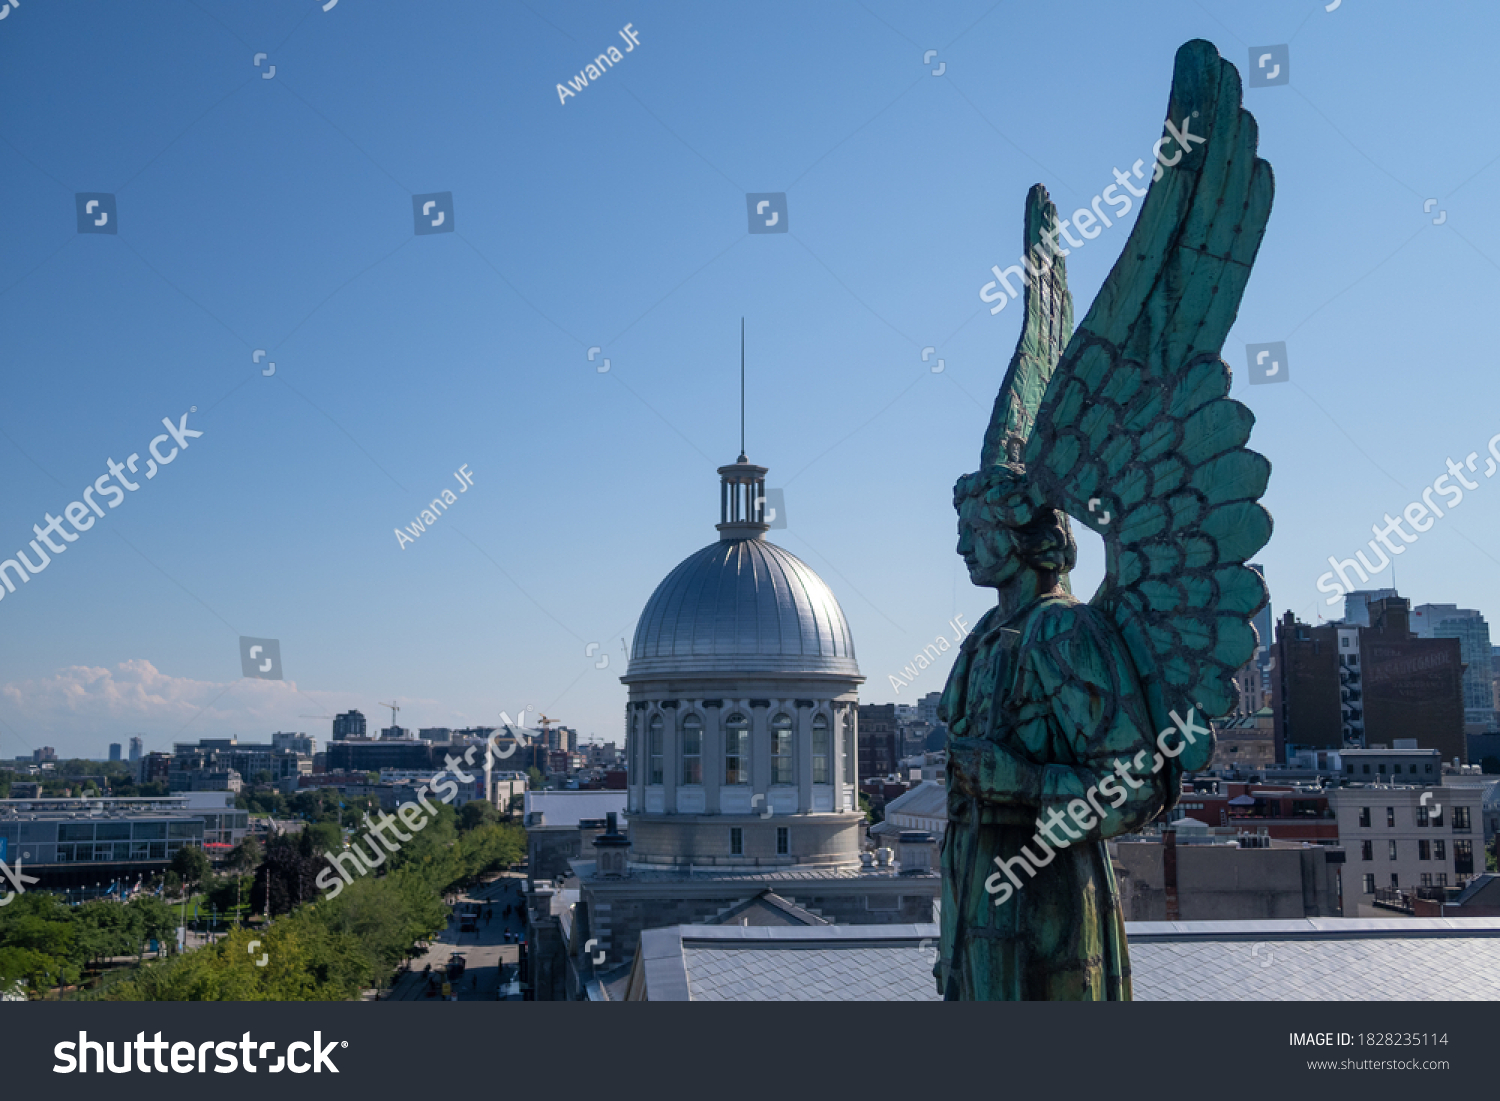 stock-photo-montreal-canada-august-exter